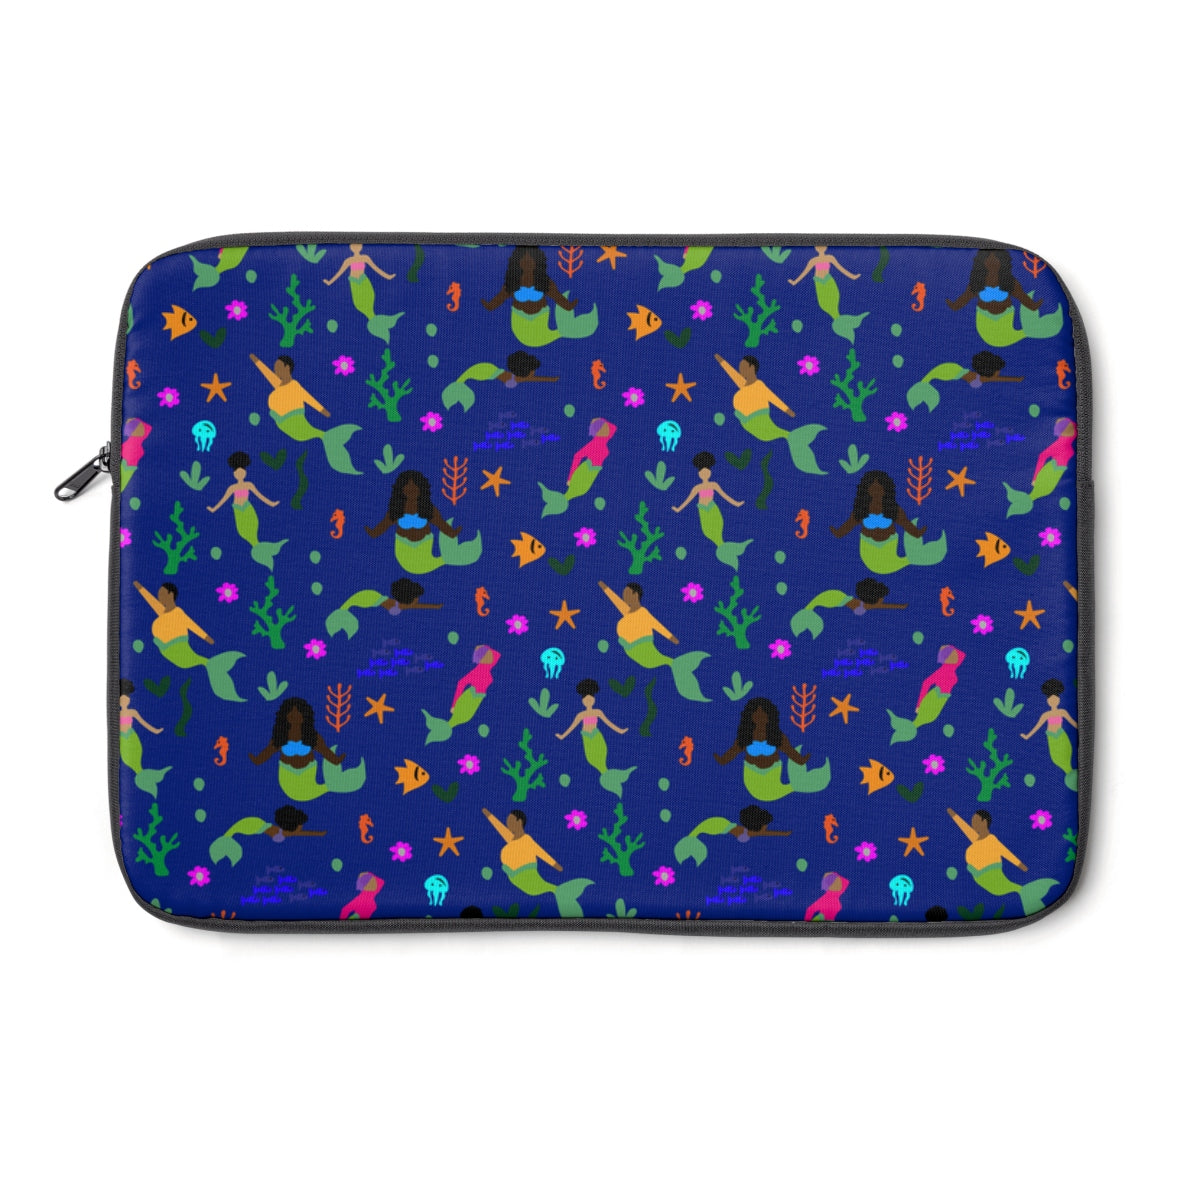 Melanin Mermaids Laptop Sleeve